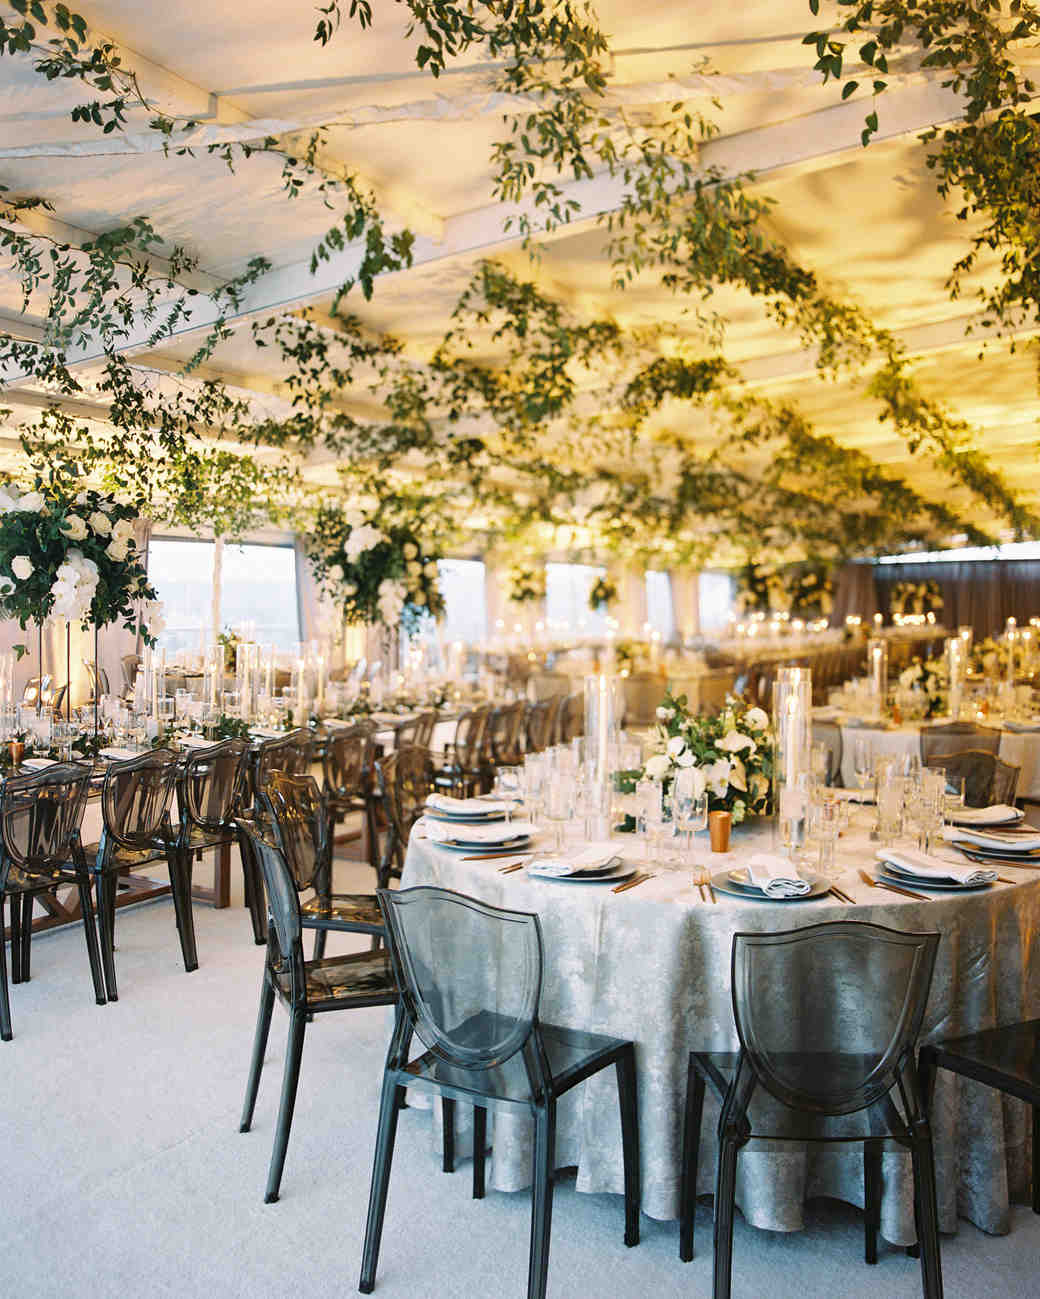 melissa justen wedding reception tables with hanging greenery